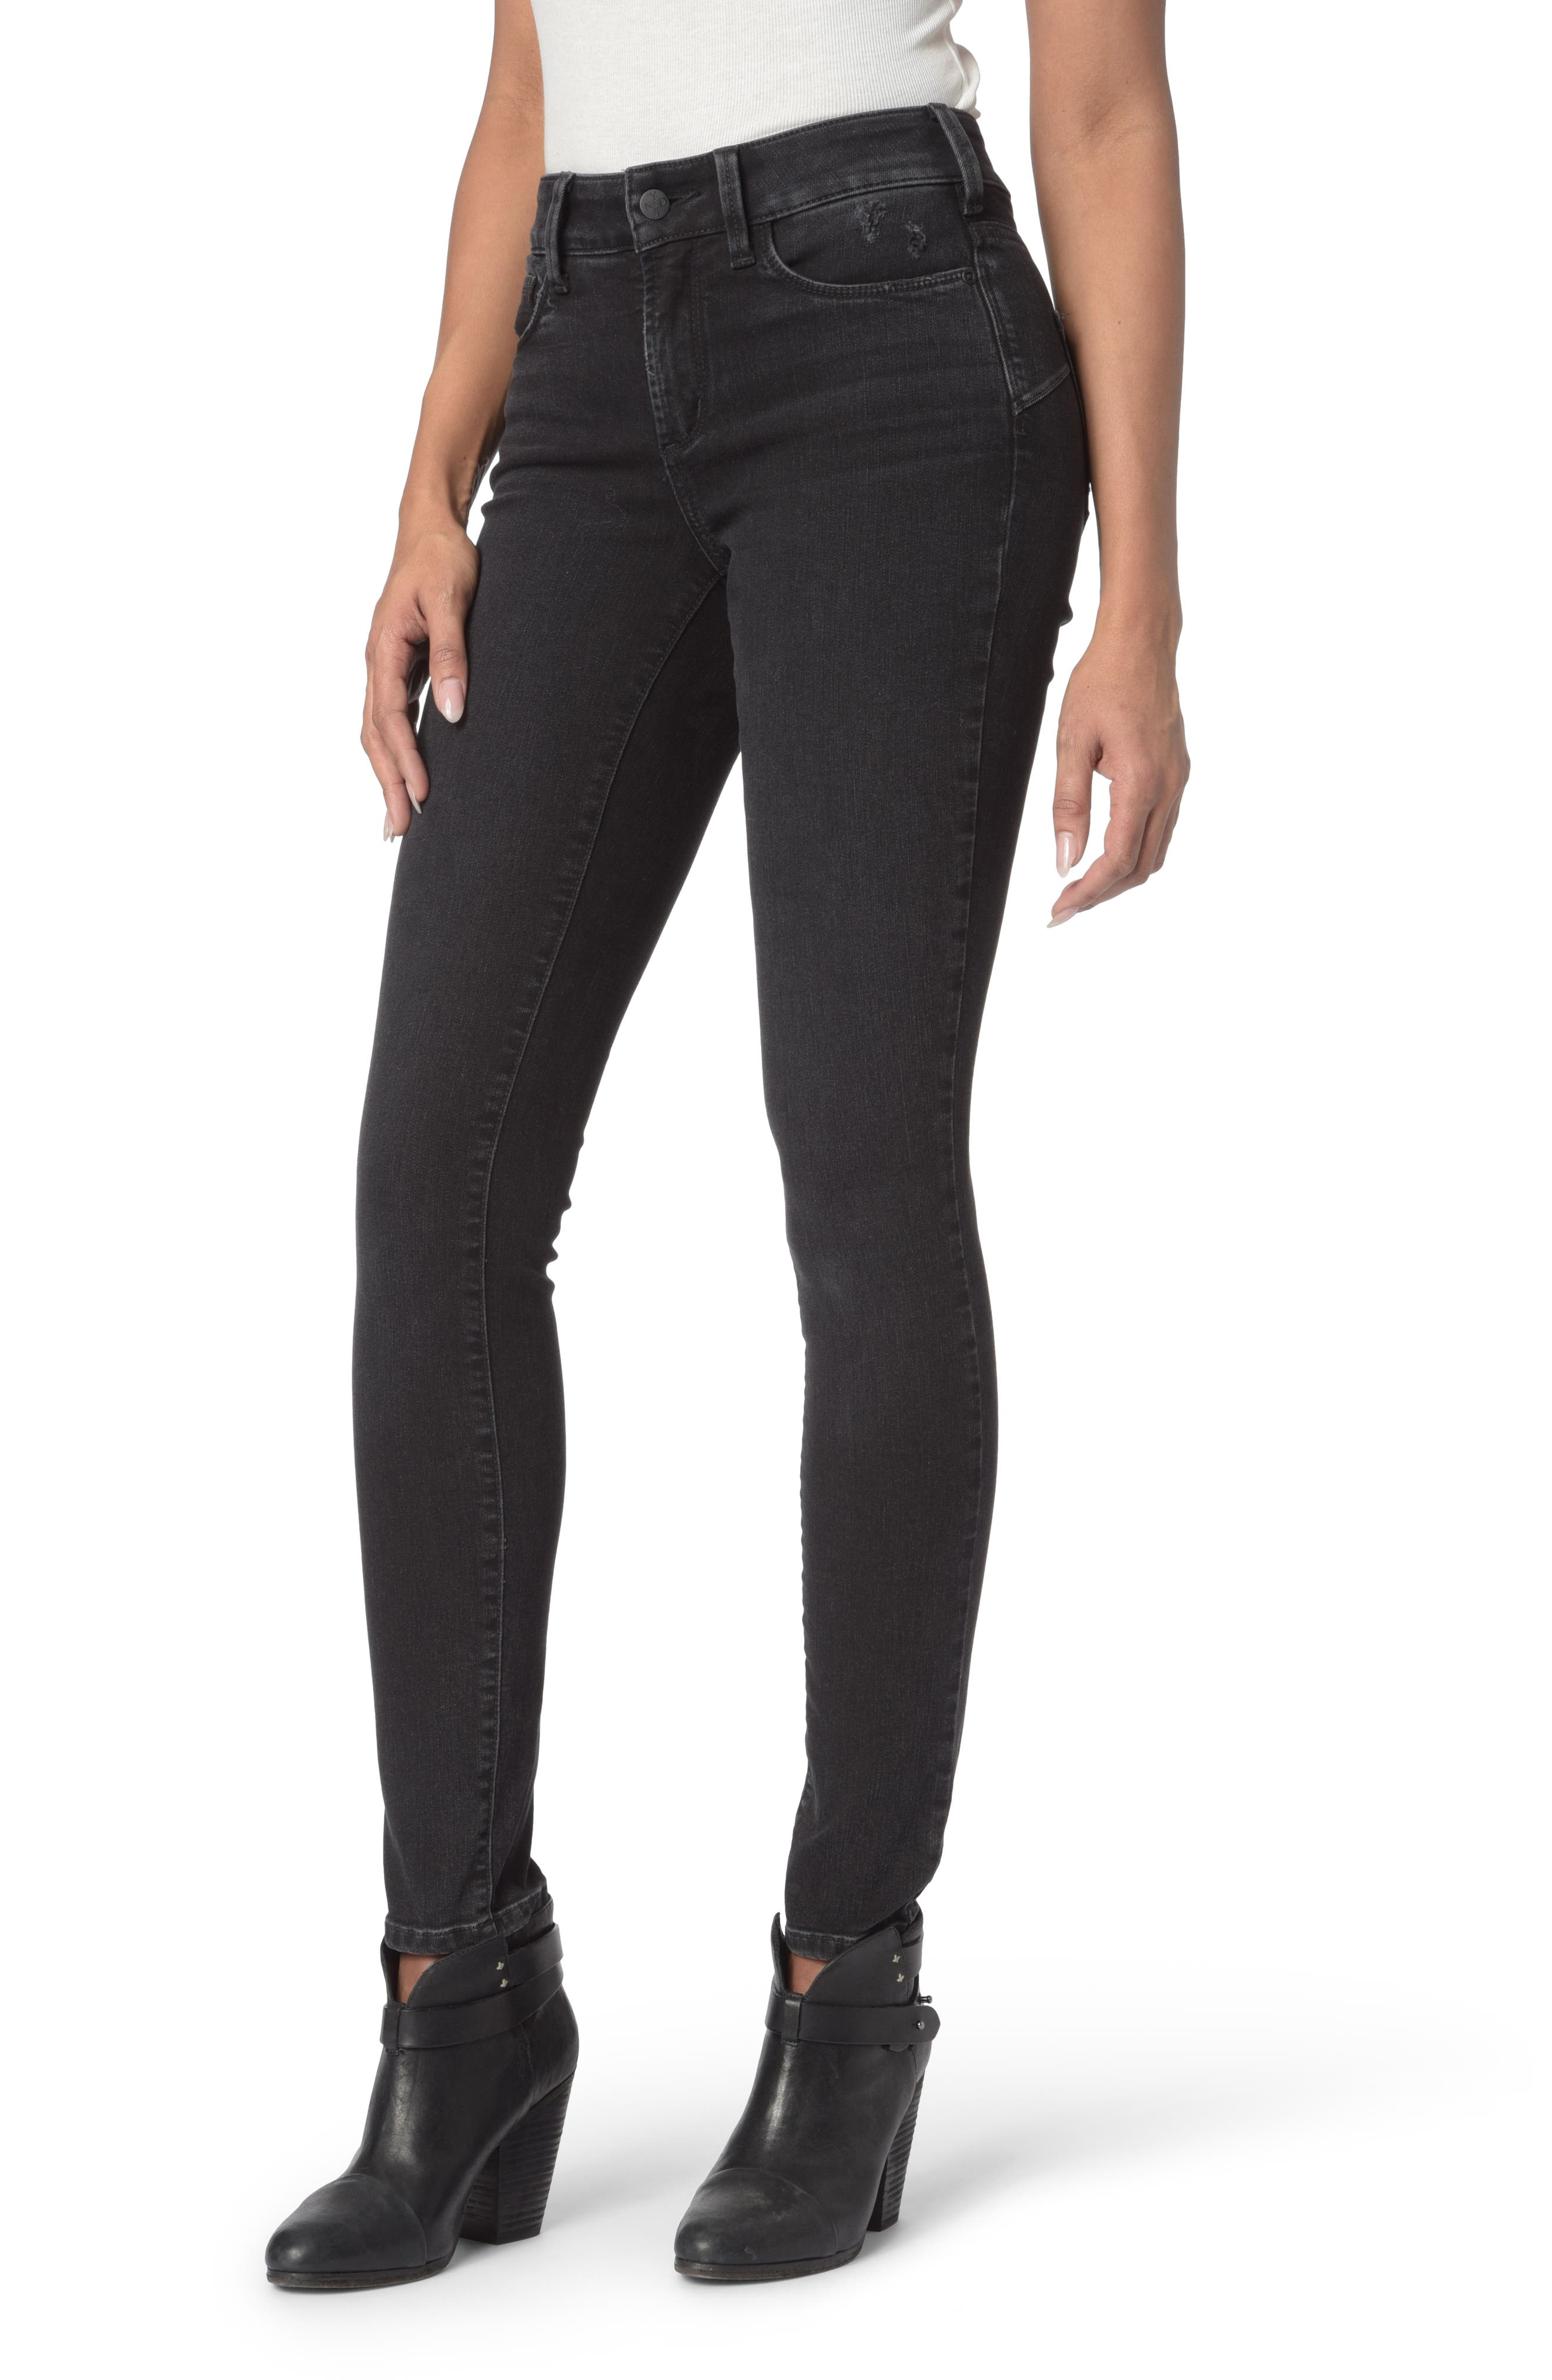 Alina Uplift Stretch Skinny Jeans,                             Main thumbnail 1, color,                             CAMPAIGN